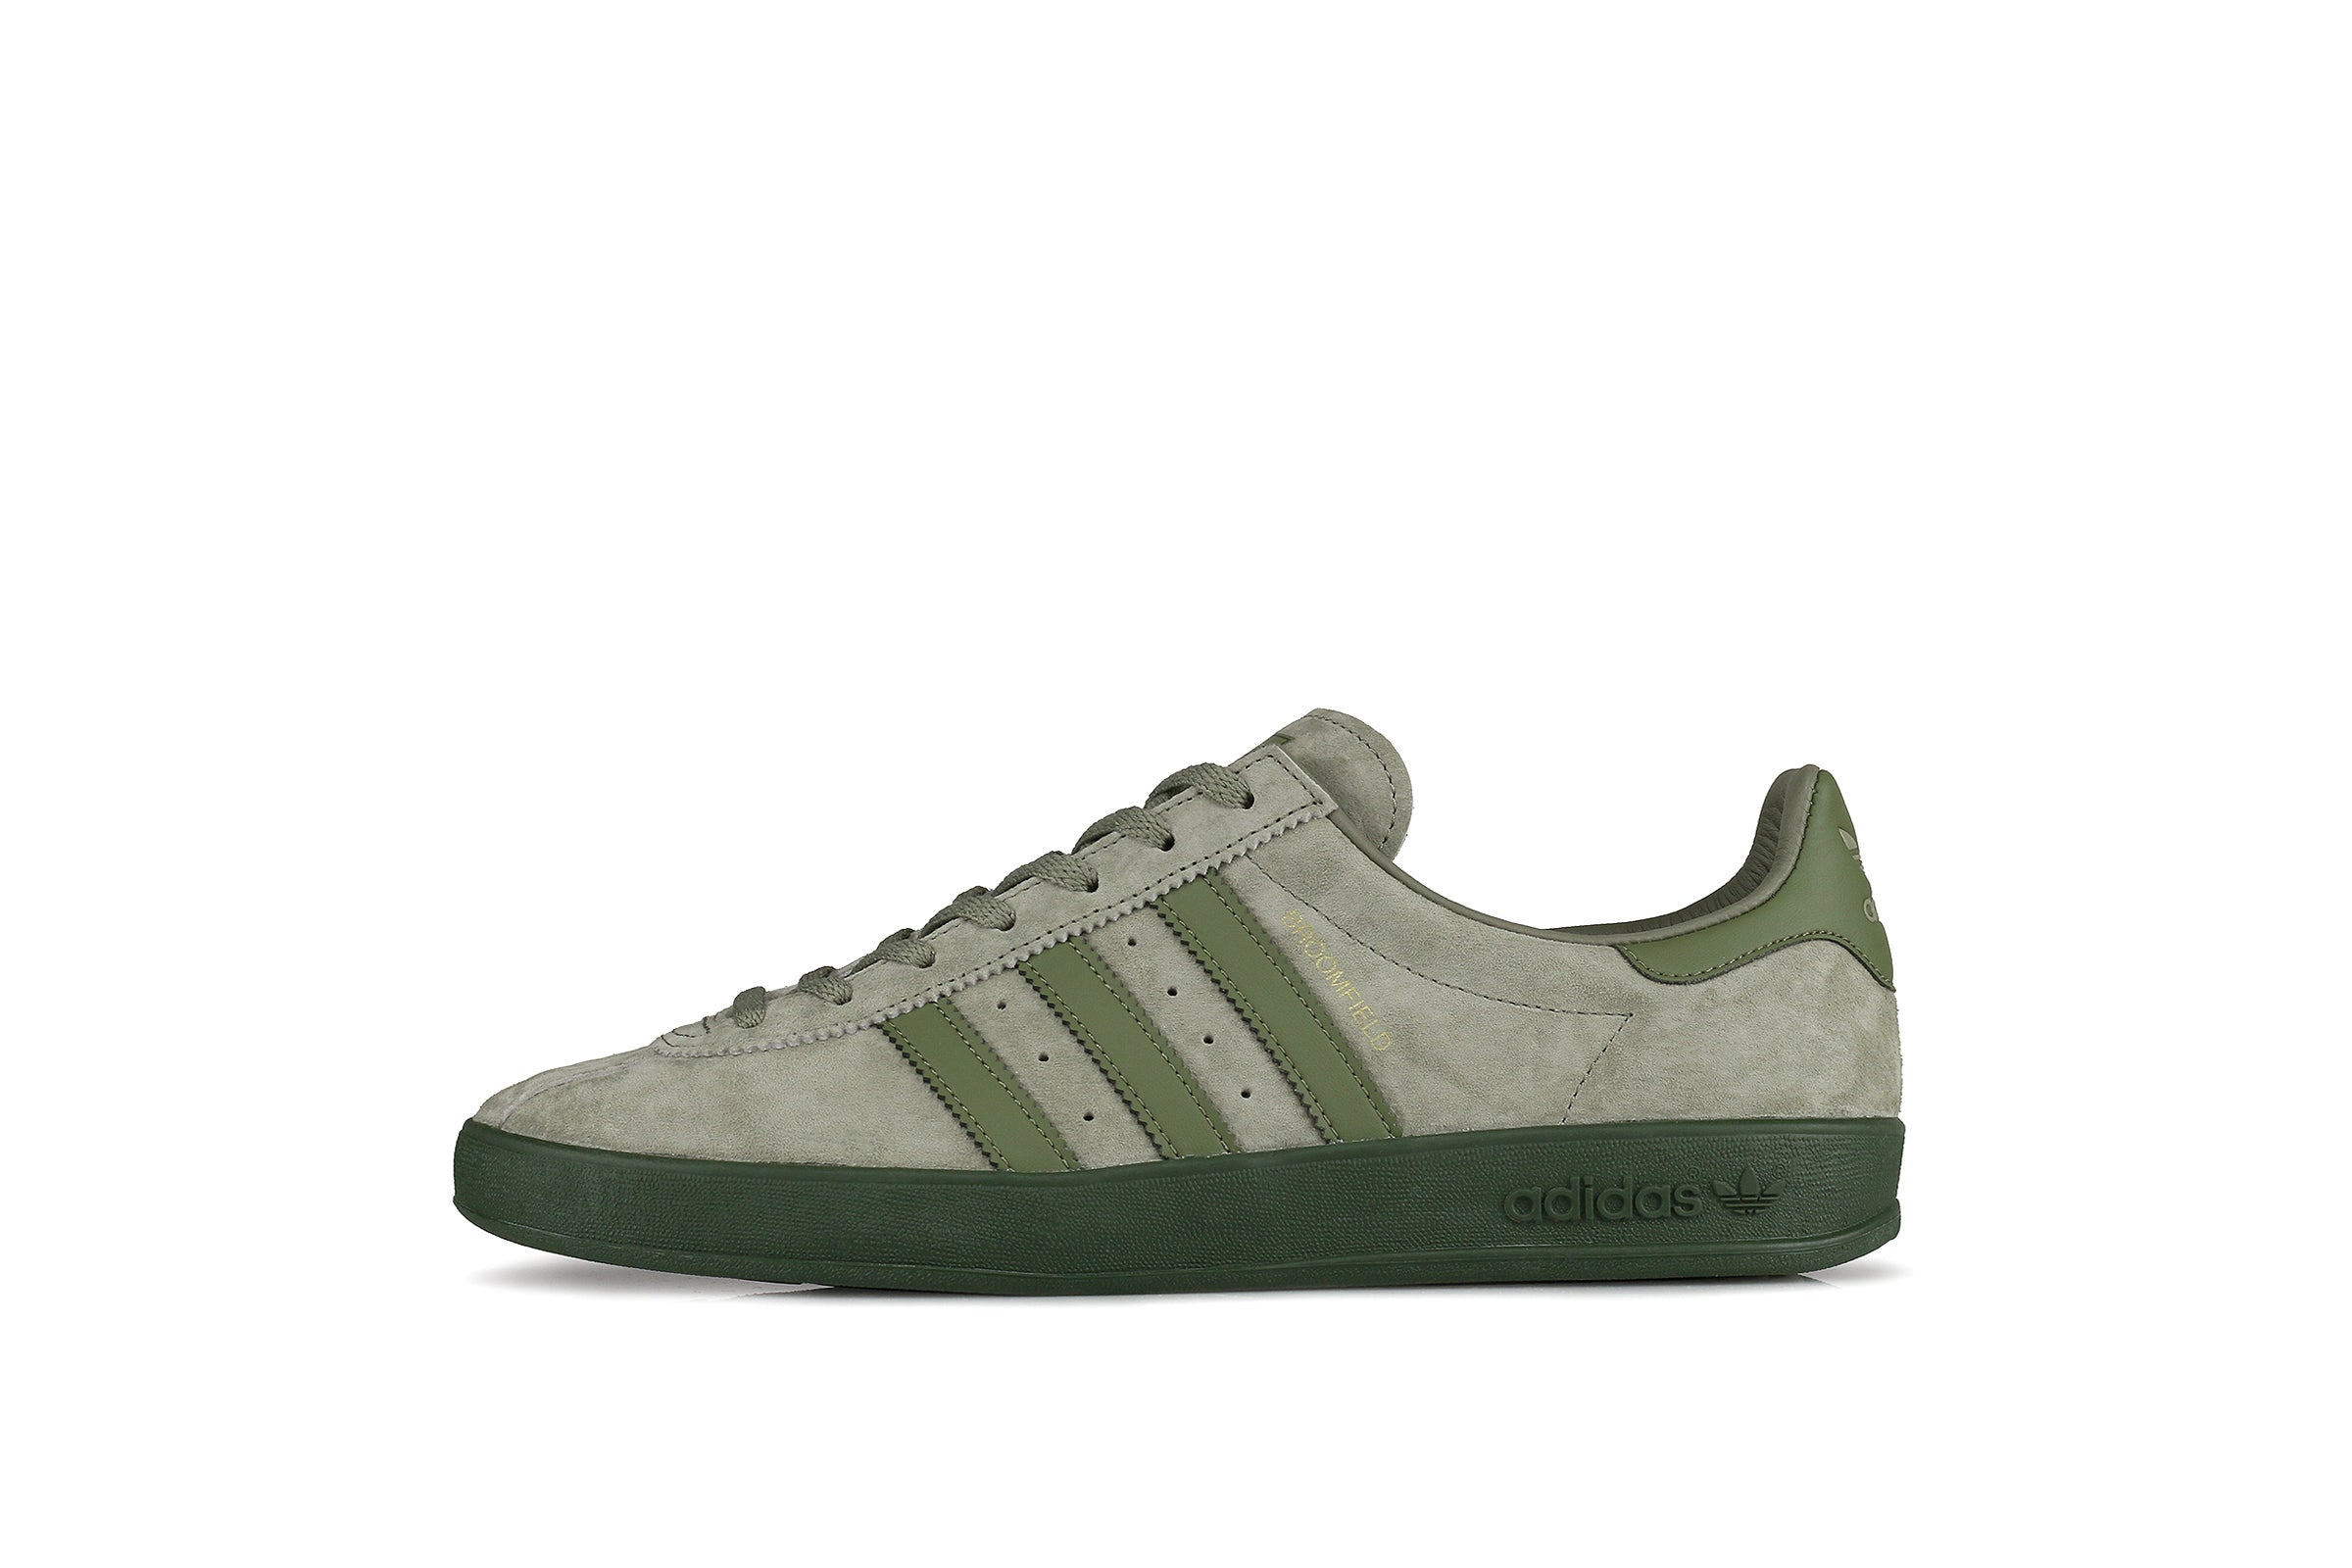 classic fit 7a569 22a05 Adidas Broomfield